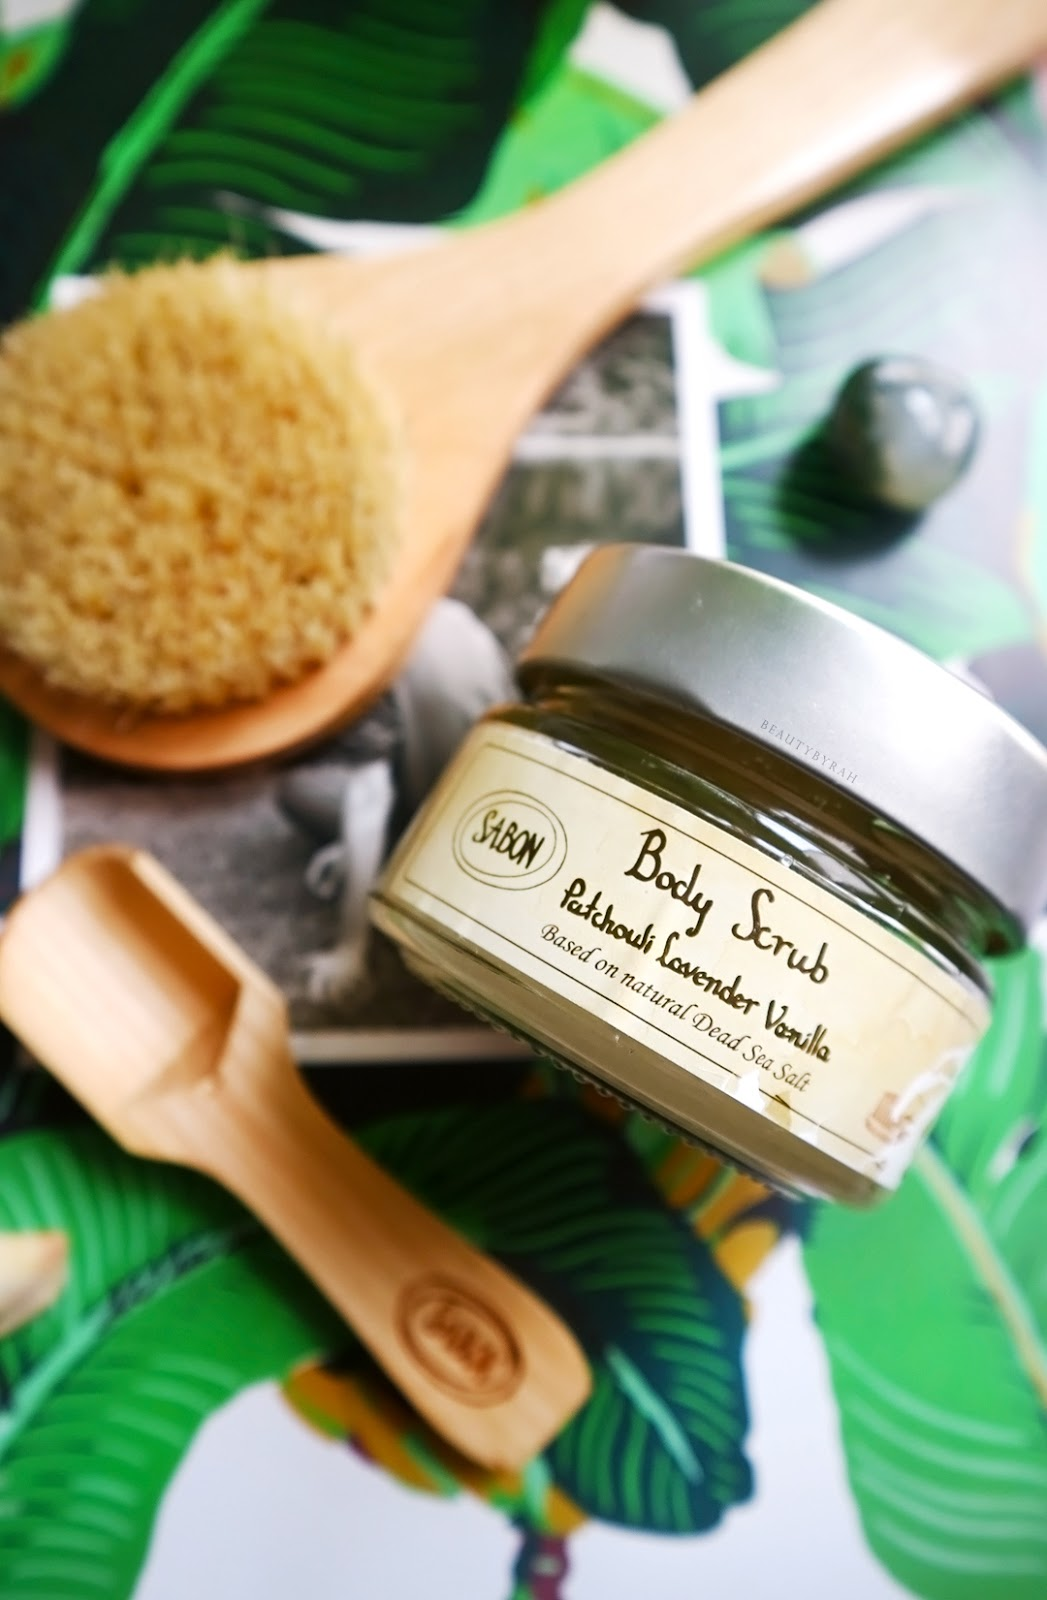 Sabon Patchouli Lavender Vanilla Body Scrub and dry brush from daiso review